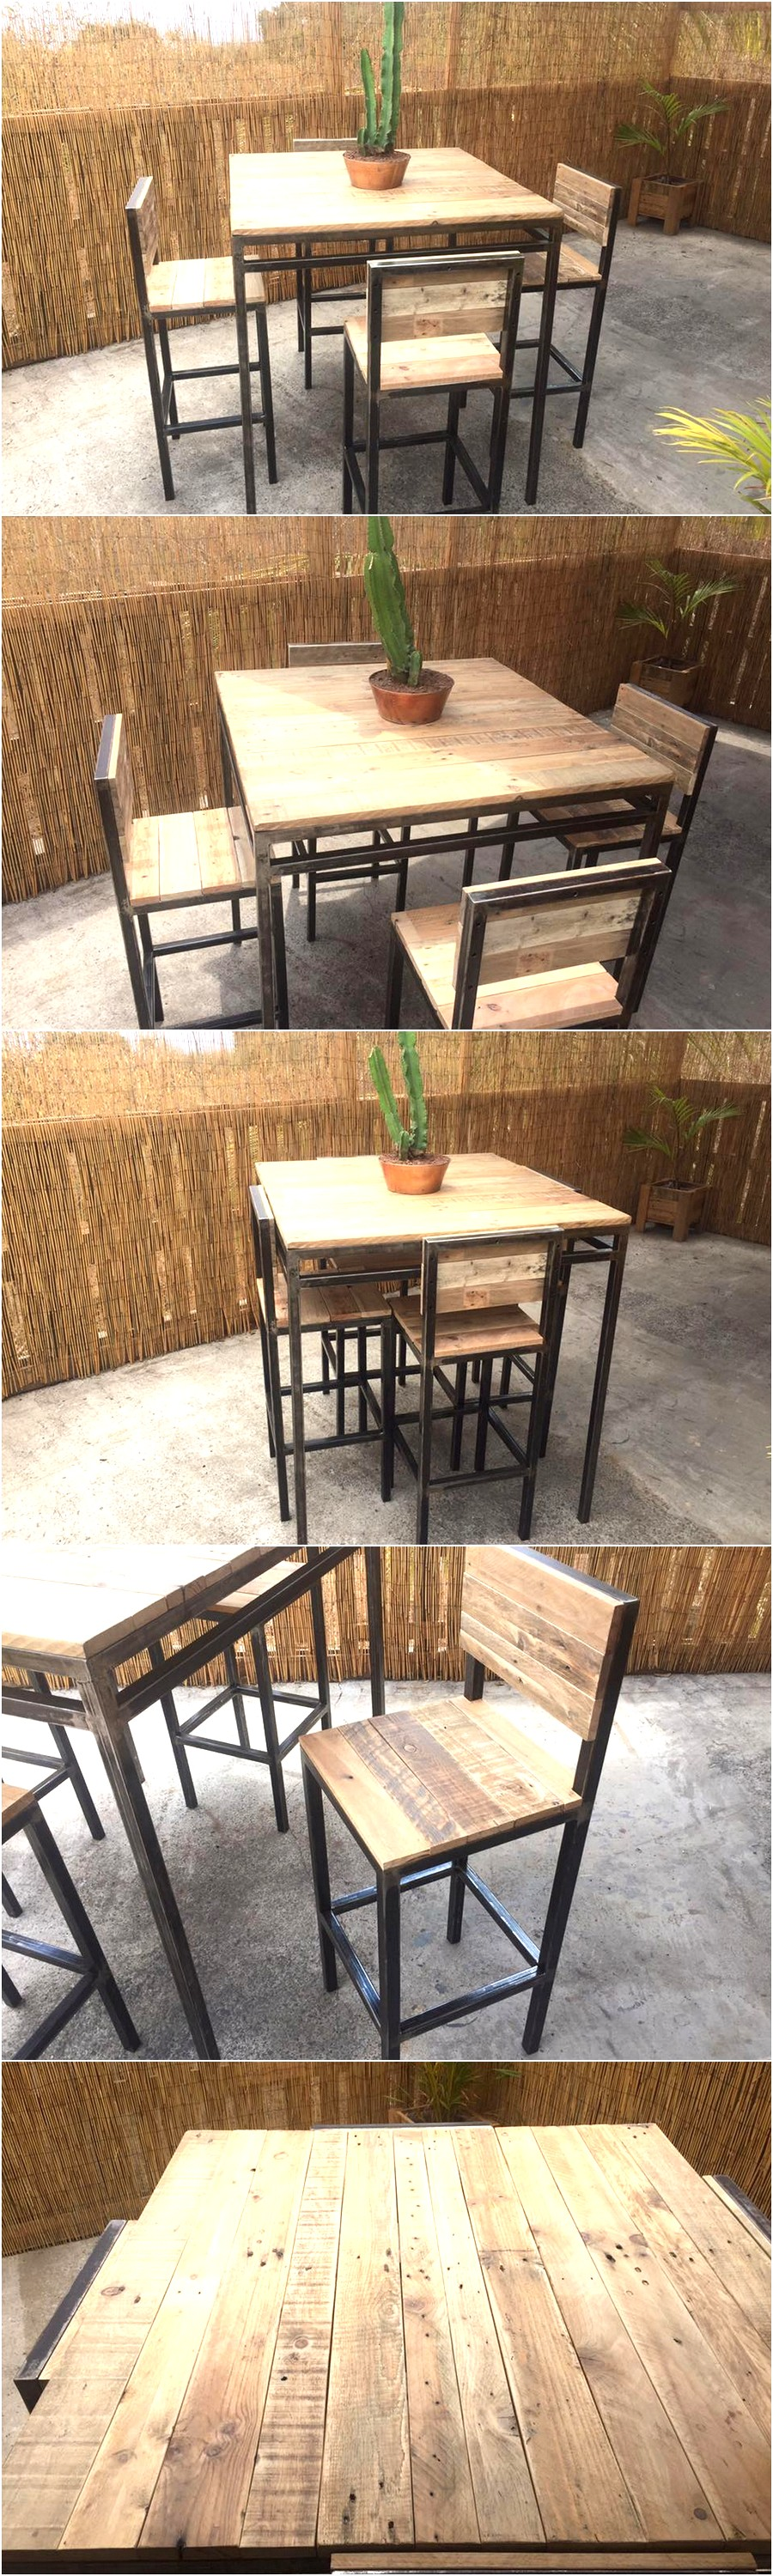 reclaimed-pallet-furniture-set